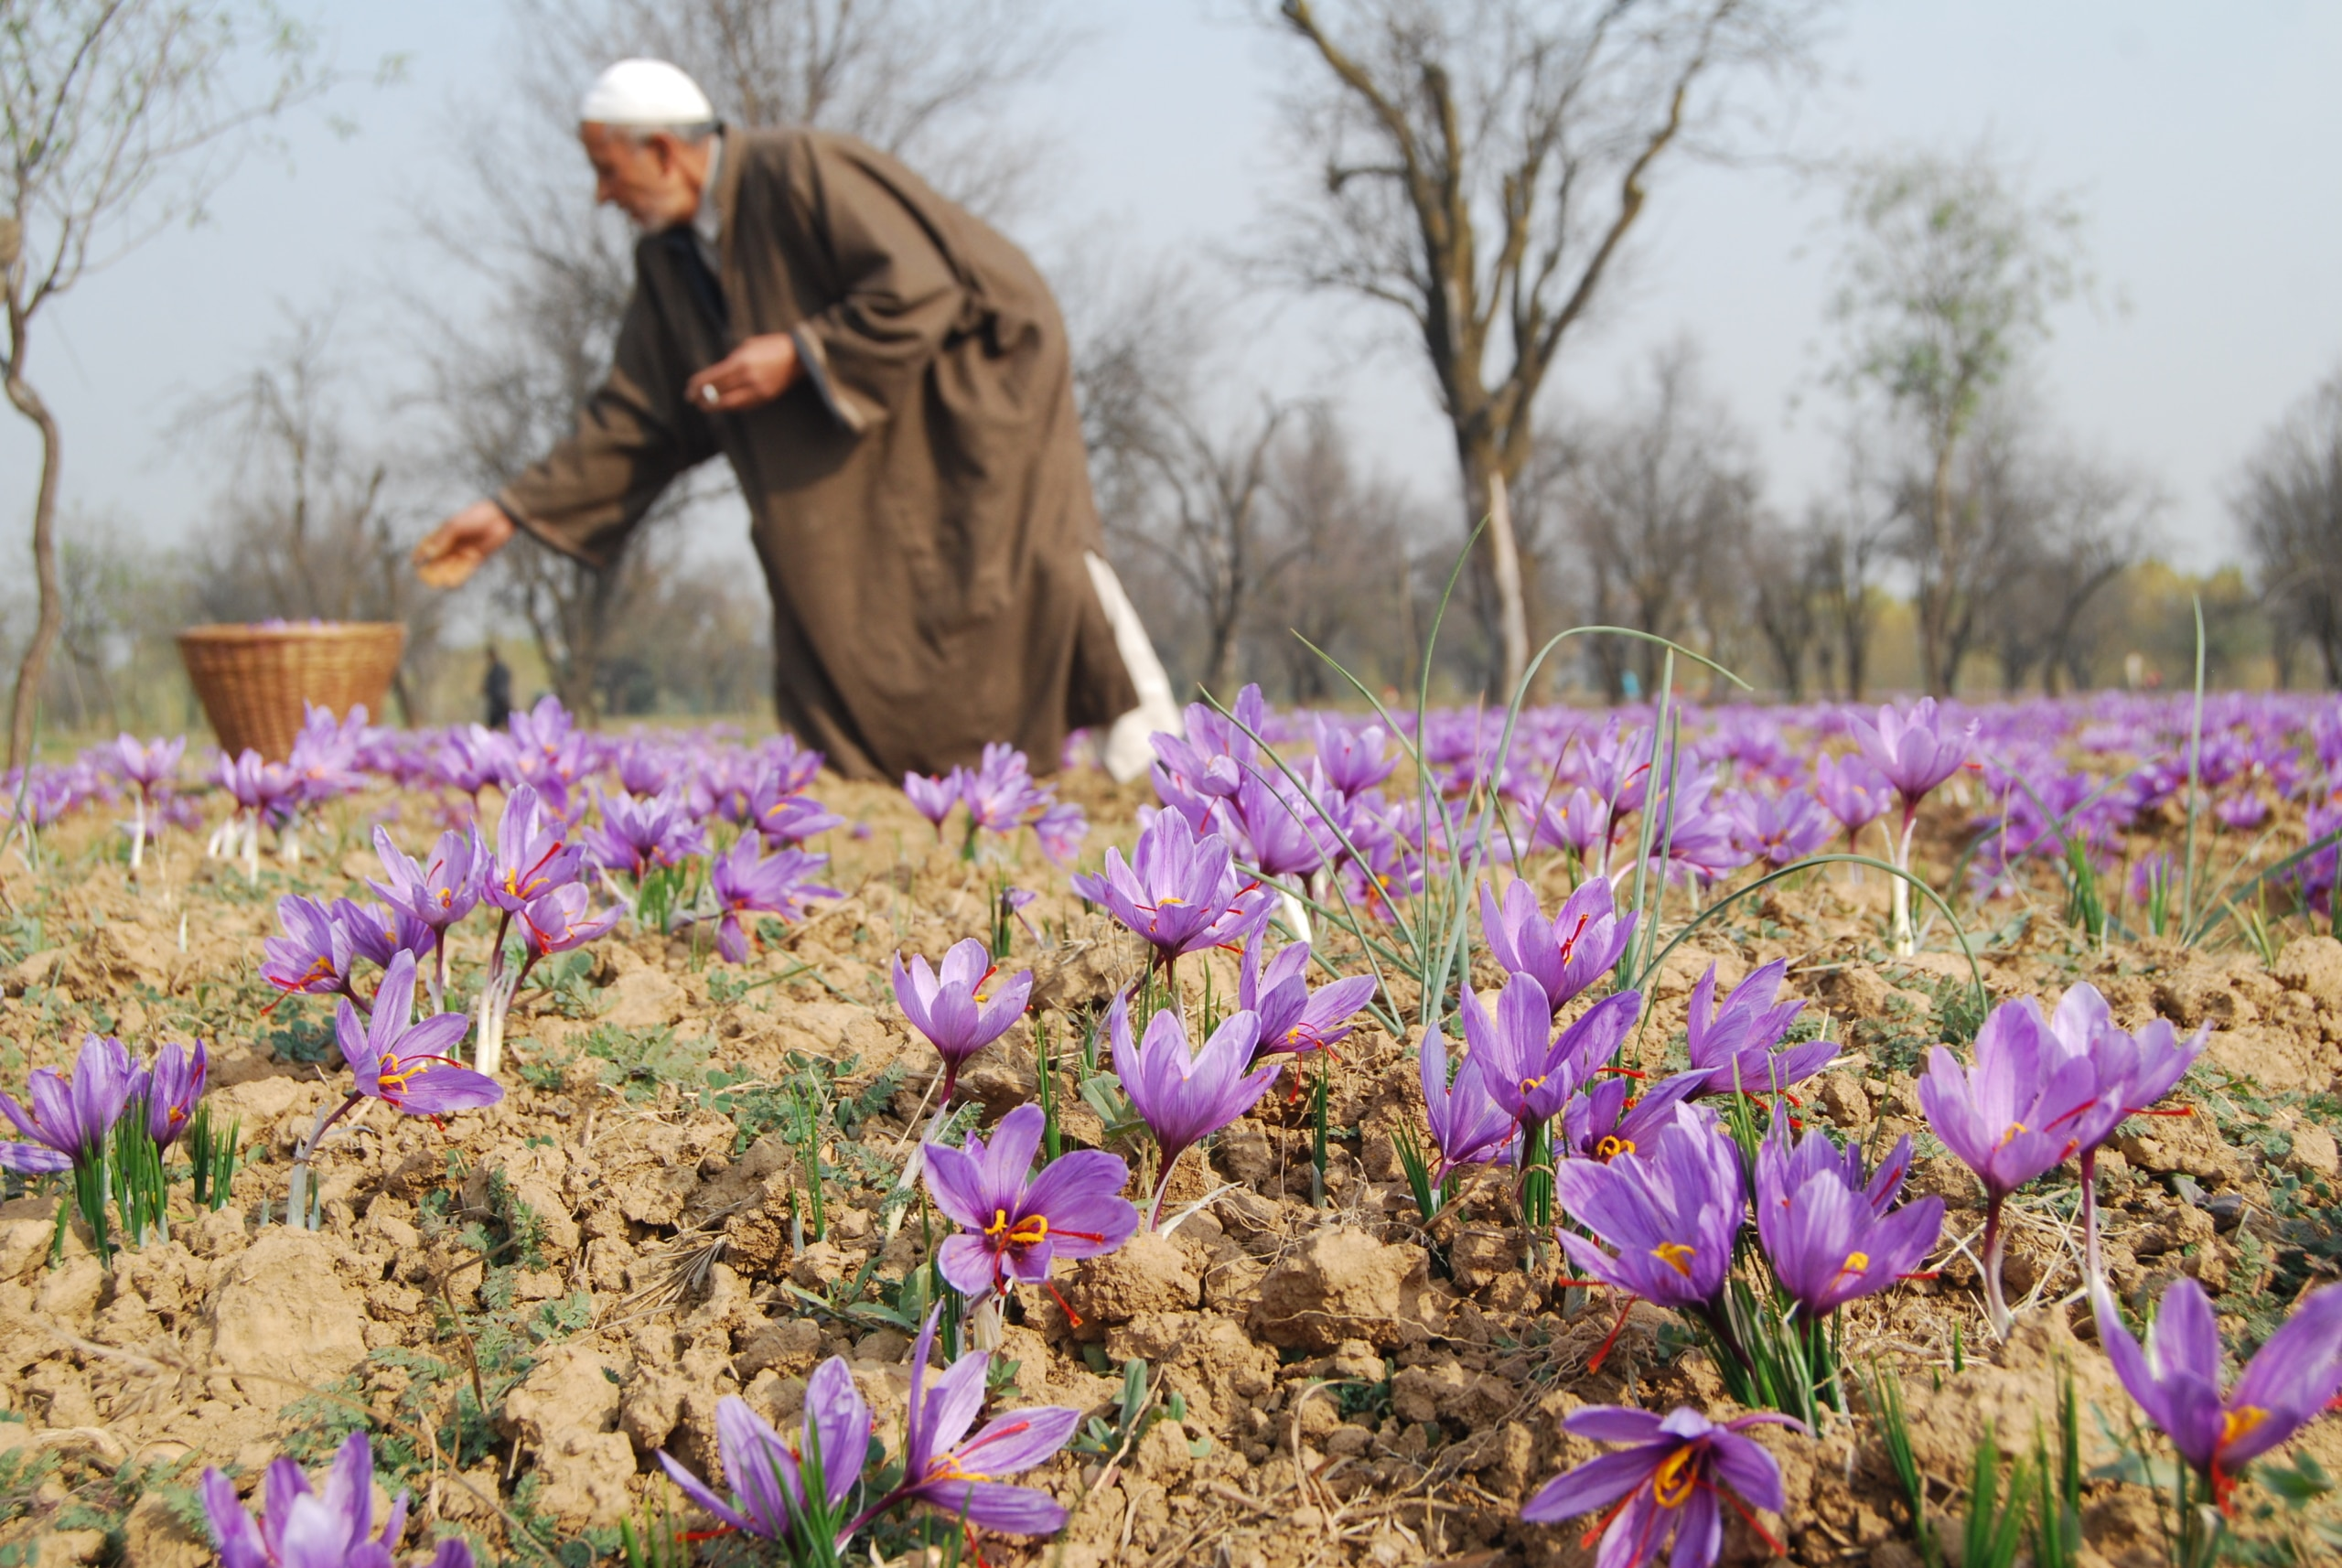 Best Quality Saffron Brand in India | Buy Kashmir Saffron ...Kashmiri Saffron Price